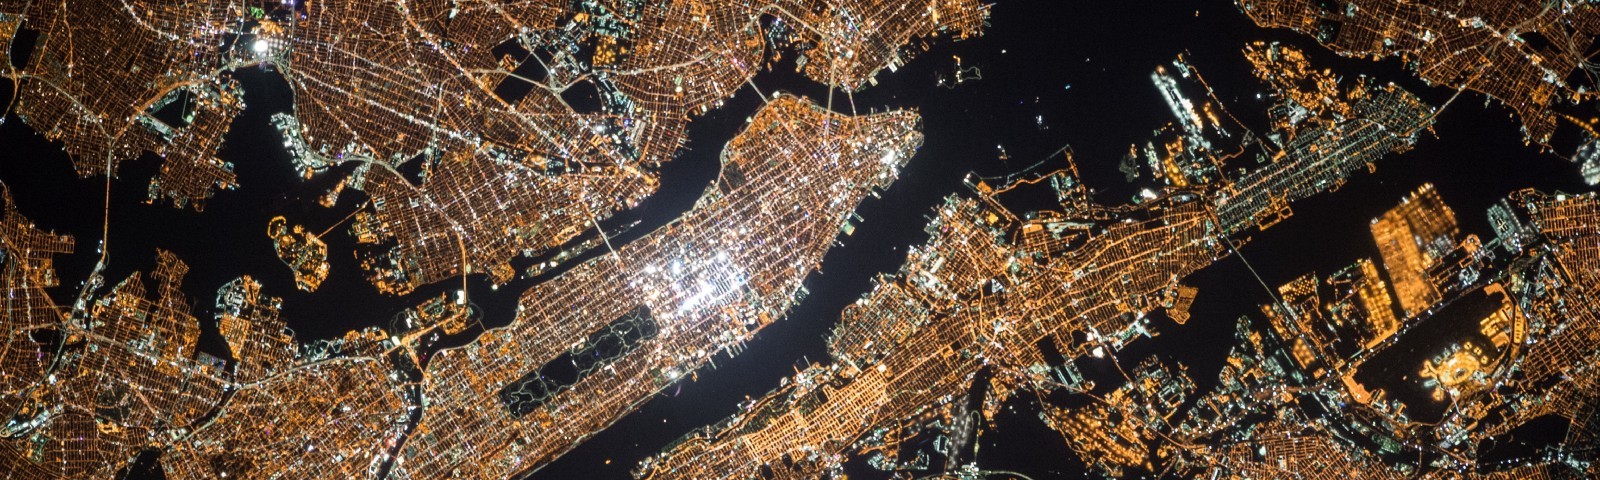 Overhead night view of New York city, glowing copper around black waterways and greenbelts.